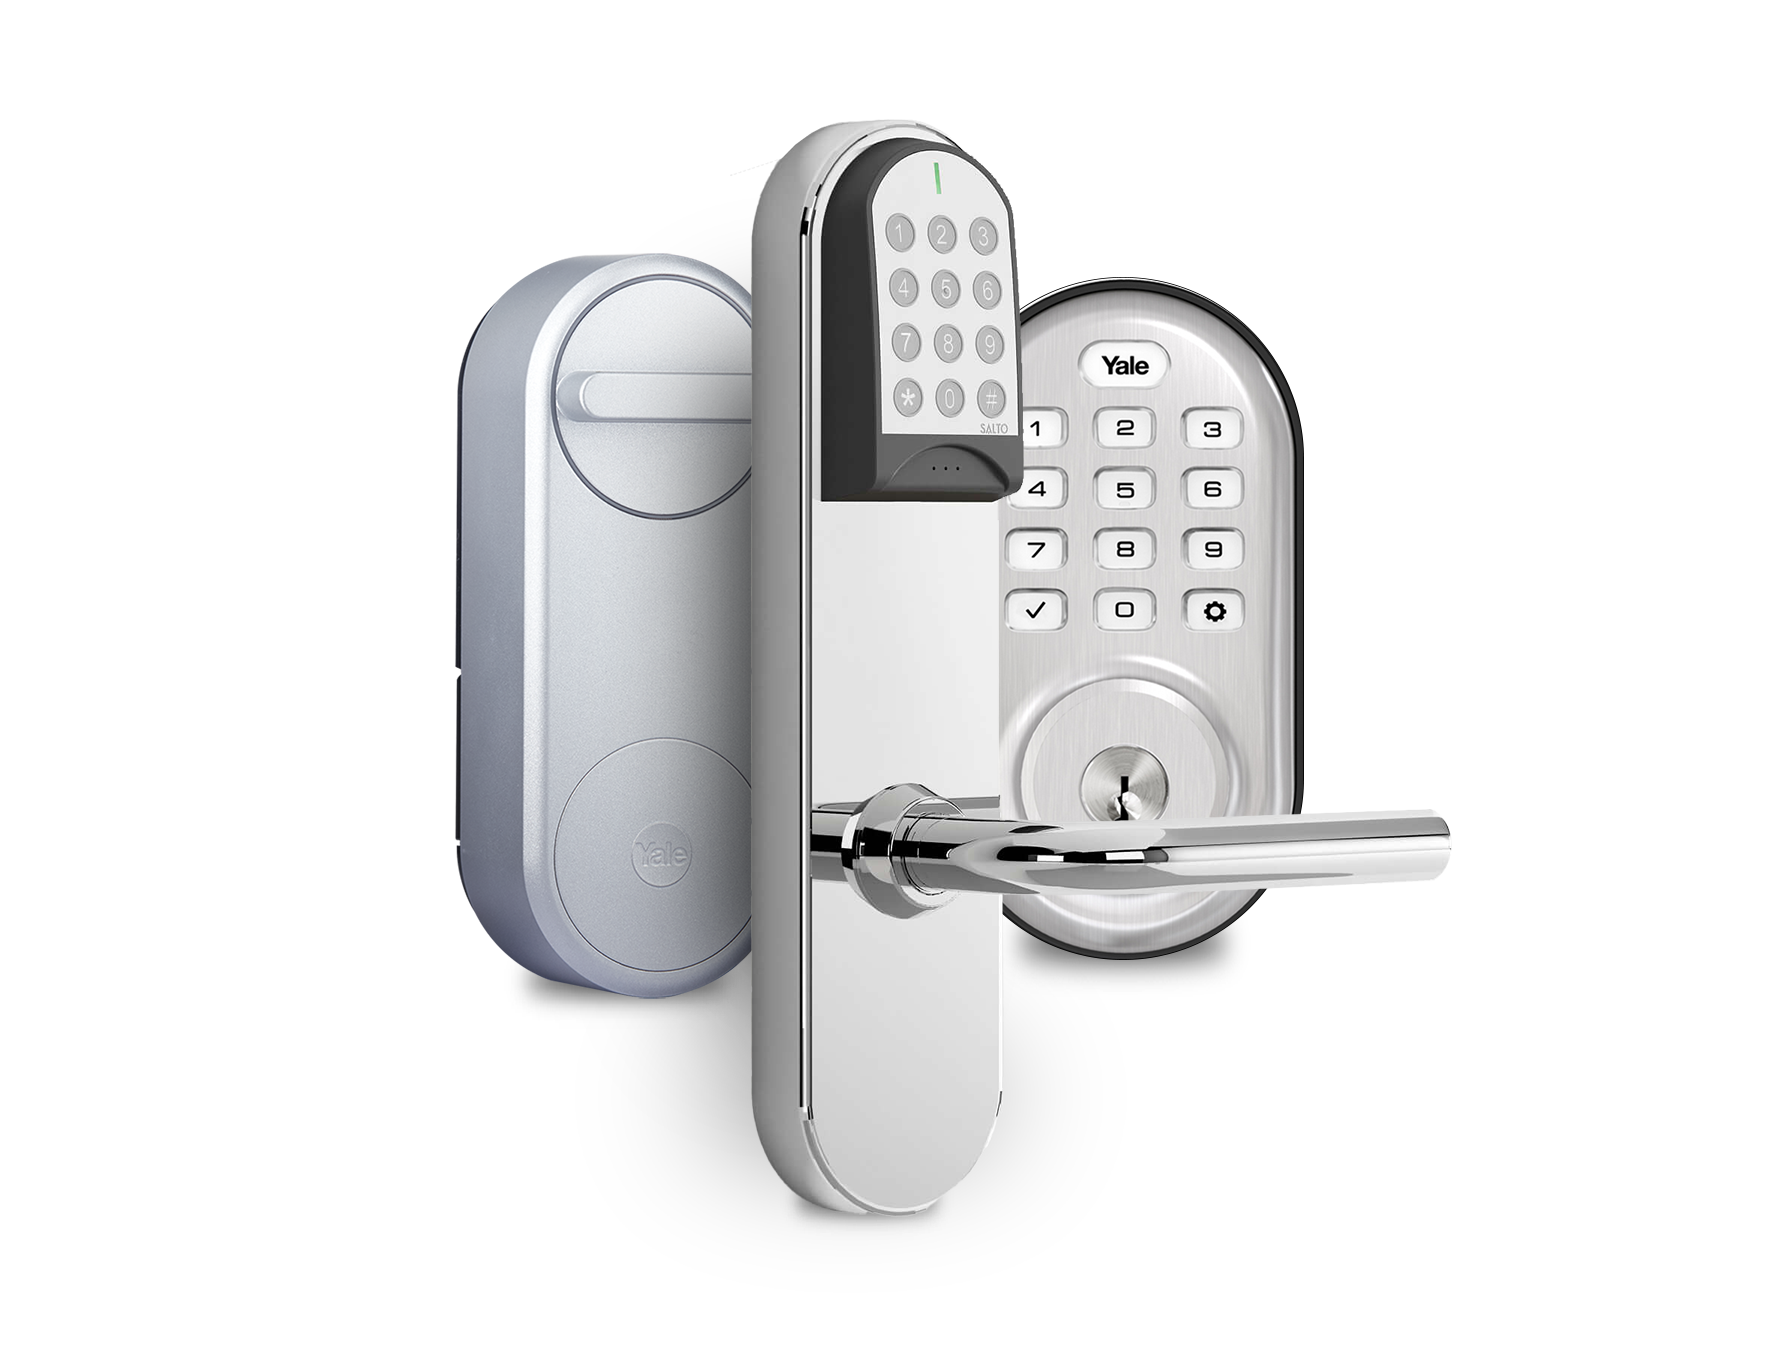 Operto Connect Smart Locks from Yale and Salto